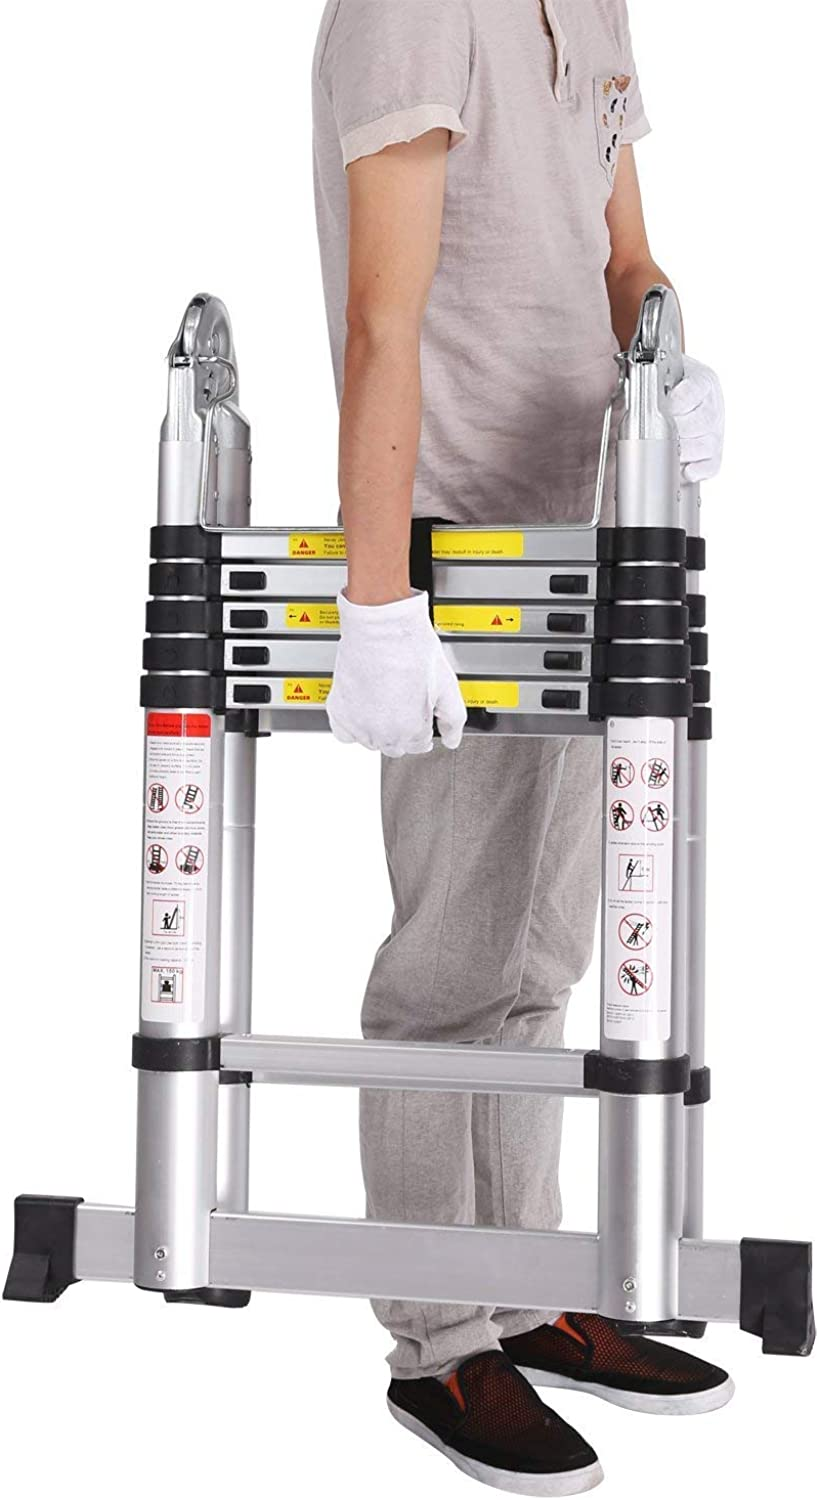 Folding Ladder Ladder Telescopic Ladder Multipurpose Ladder Ladder Telescopic Folding 150 kg Aluminum Telescopic Design (with Slideon Rubber and Steel Locking pins) (3.8M Folding Ladder)